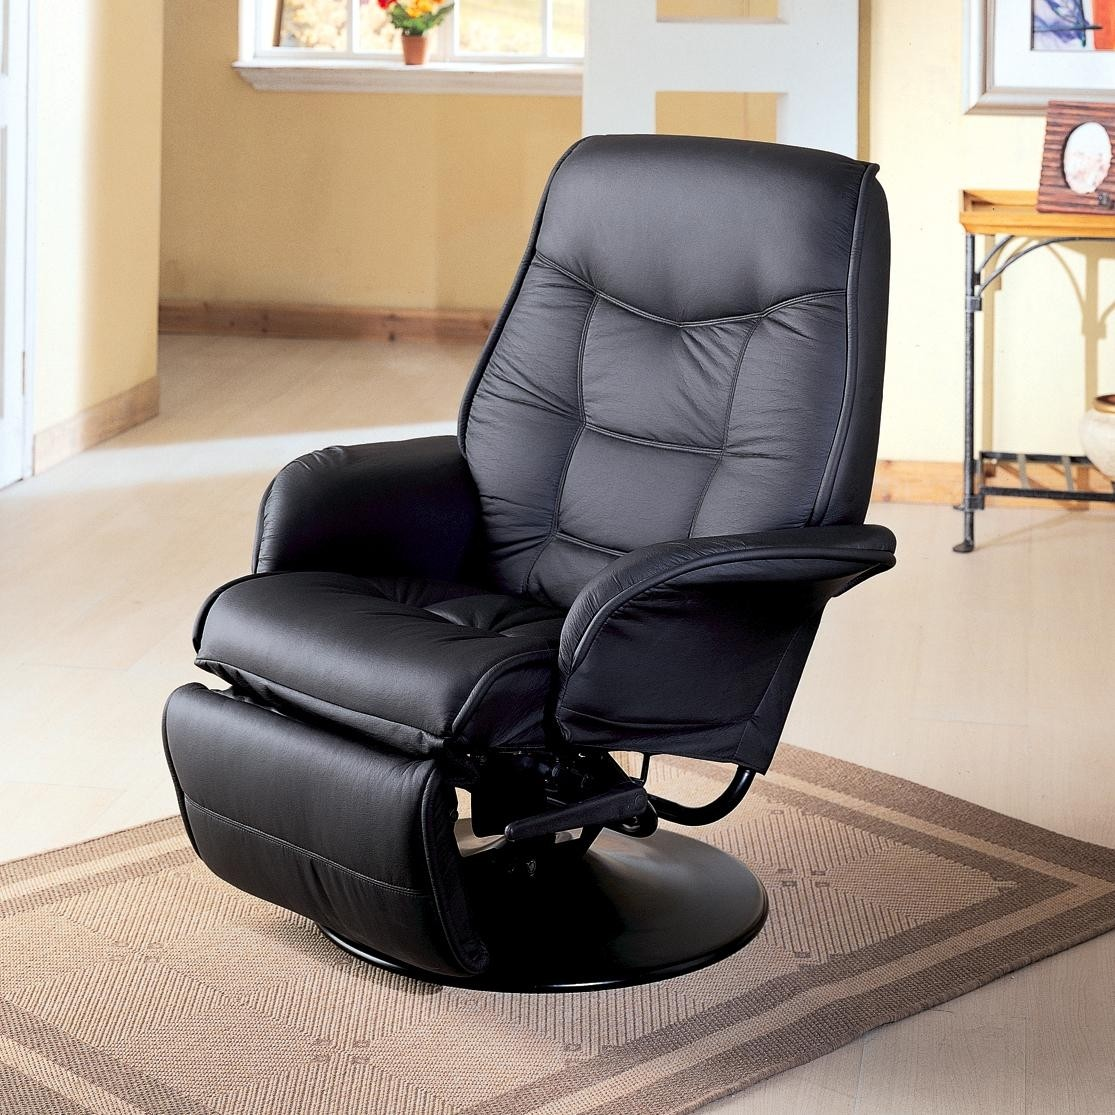 Superieur Indoor Chaise Lounge Chairs Swivel Chaise Lounge Chair Indoor